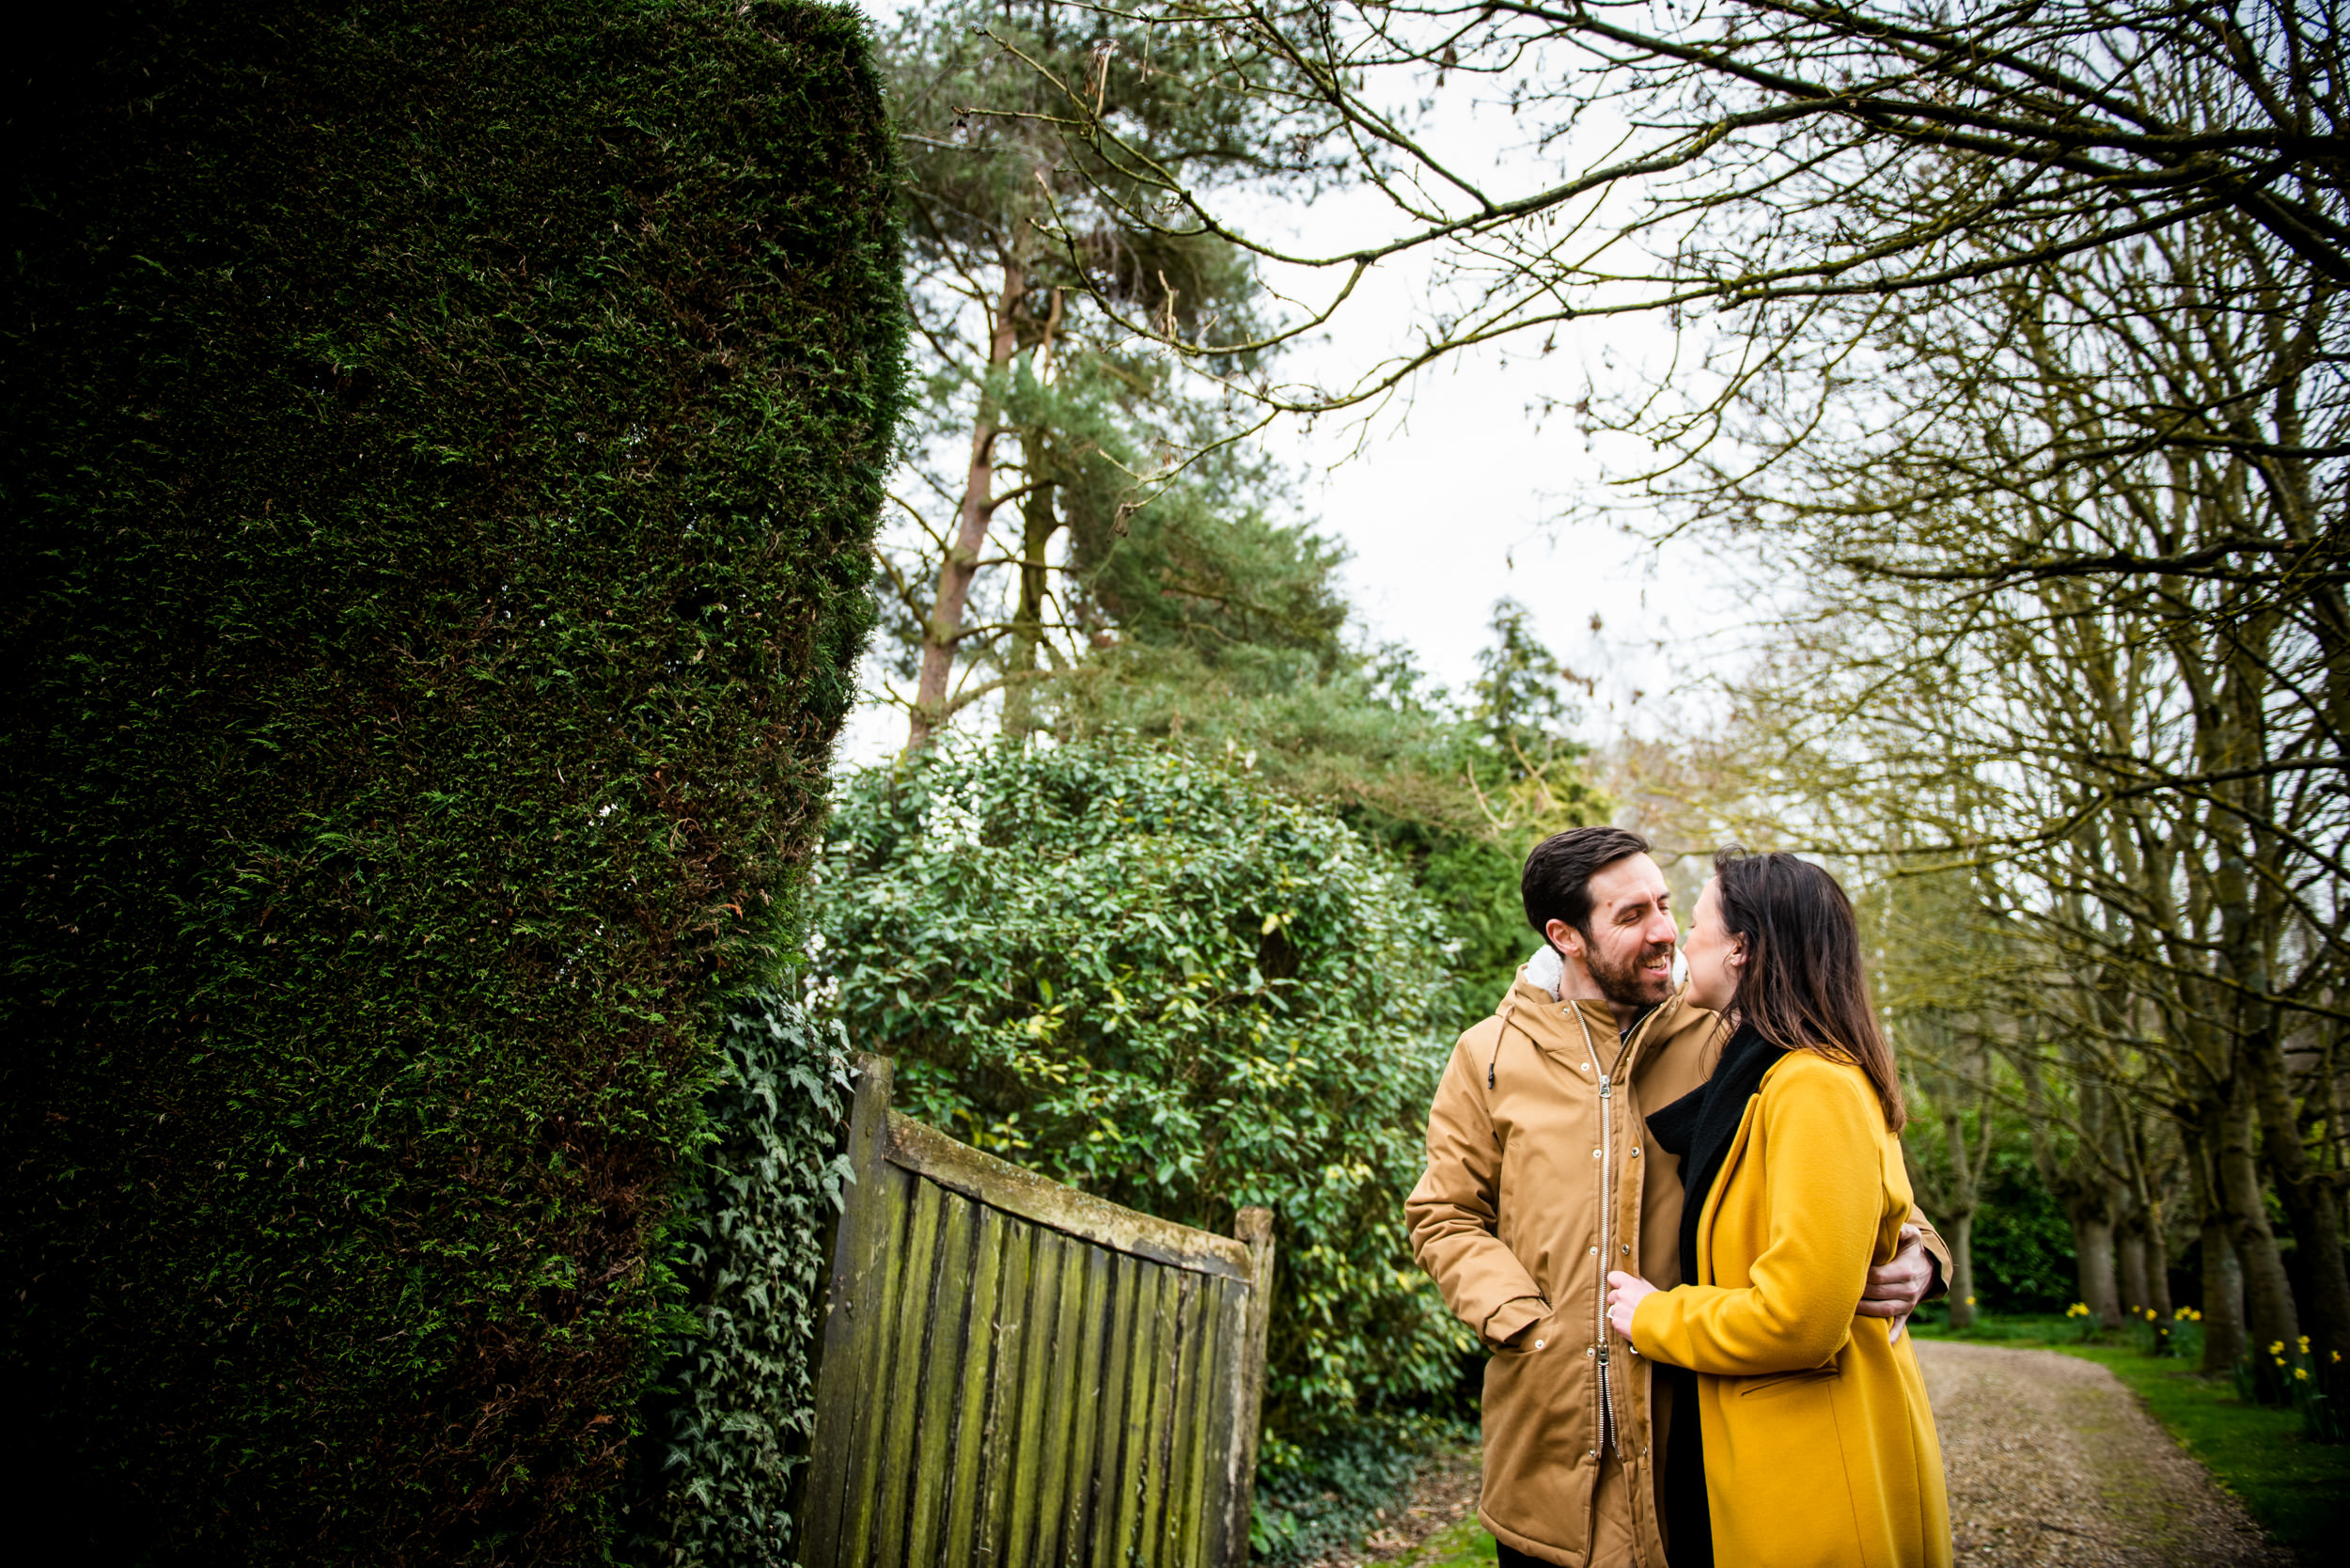 Engaged couple looking lovingly at each other in a wooded gateway